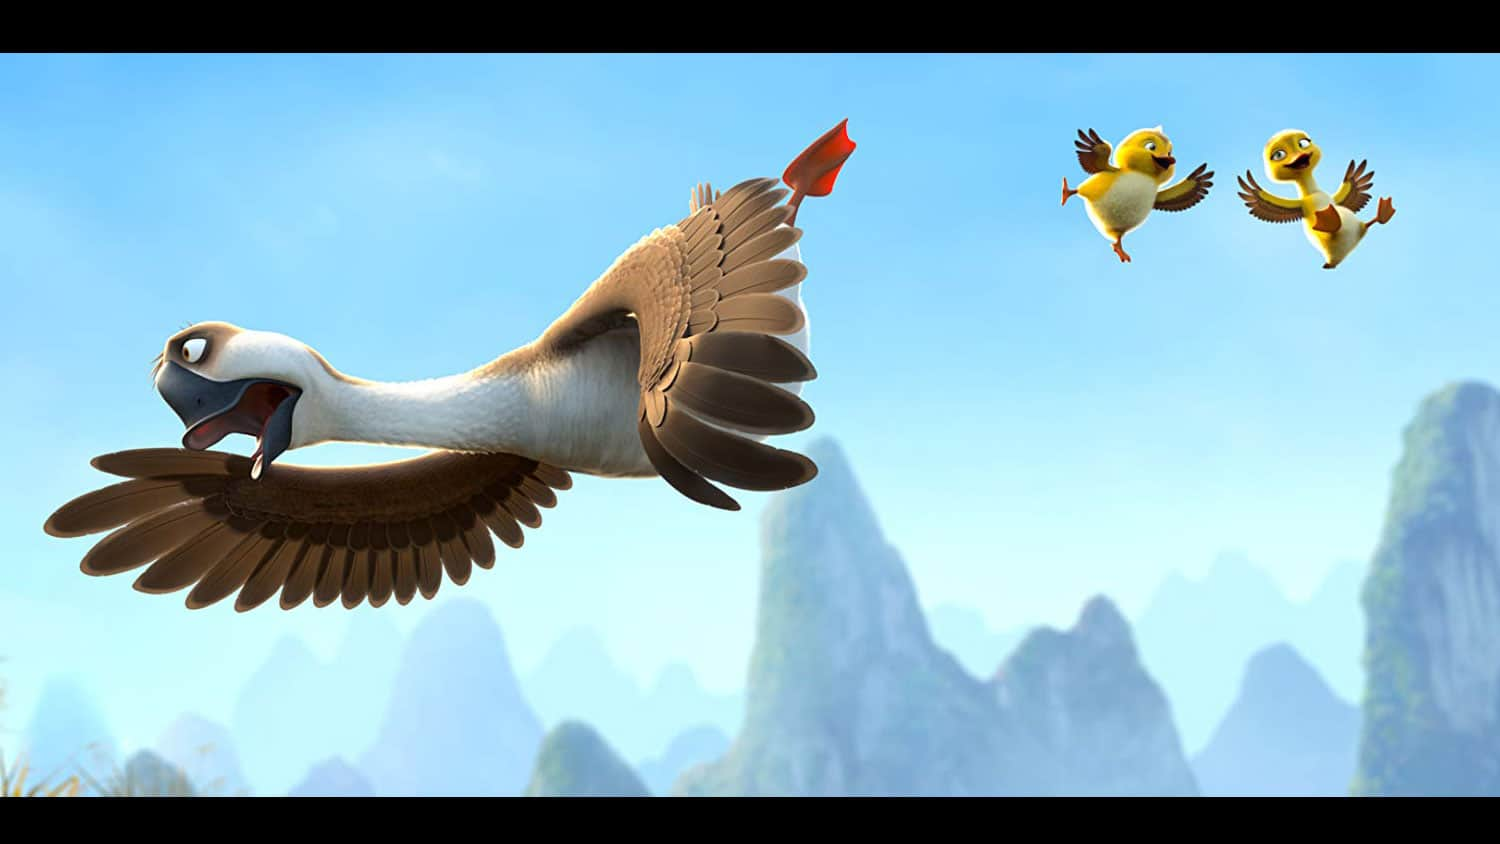 Duck Duck Goose Review – Three Little Birds - OC Movie Reviews - Movie Reviews, Movie News, Documentary Reviews, Short Films, Short Film Reviews, Trailers, Movie Trailers, Interviews, film reviews, film news, hollywood, indie films, documentaries